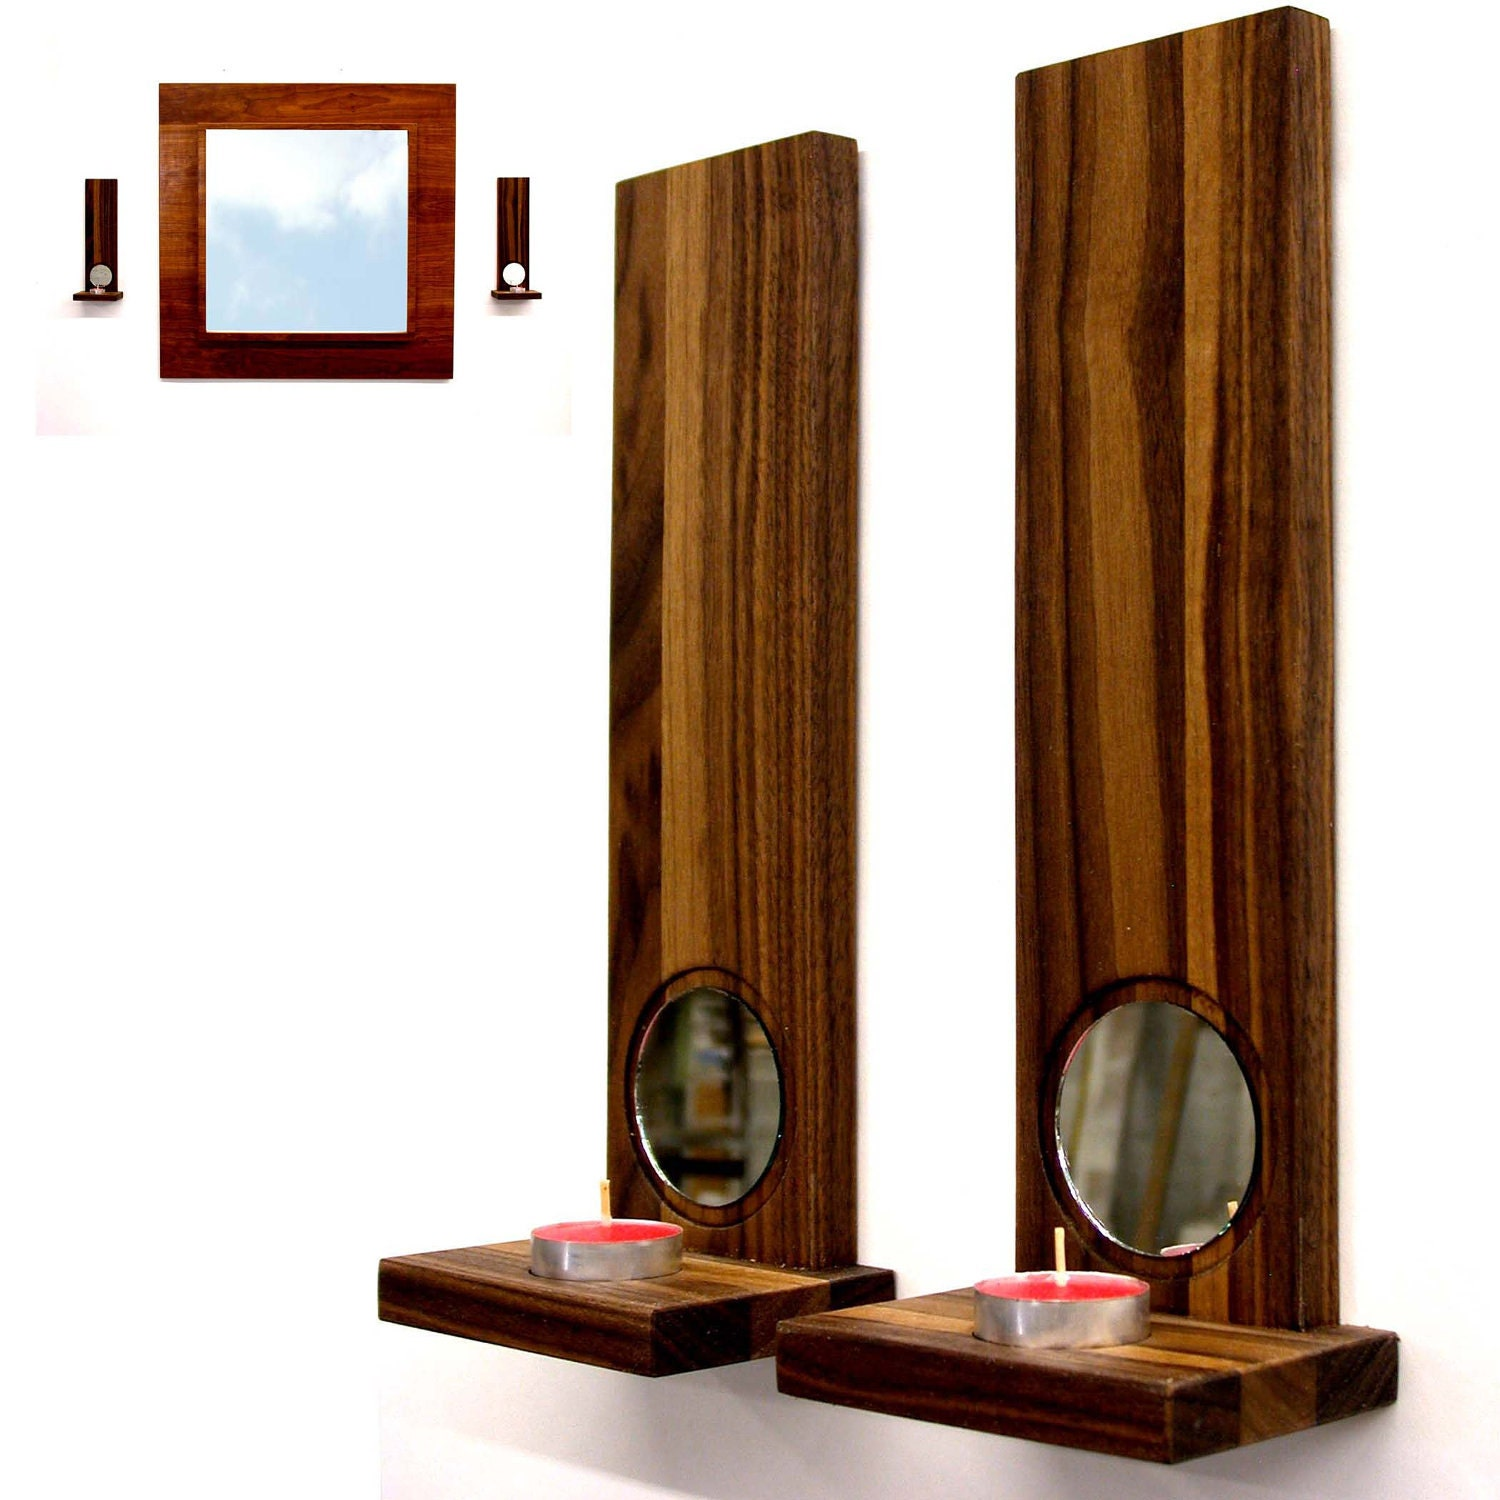 Modern wall sconces candle holders home decor Walnut duo